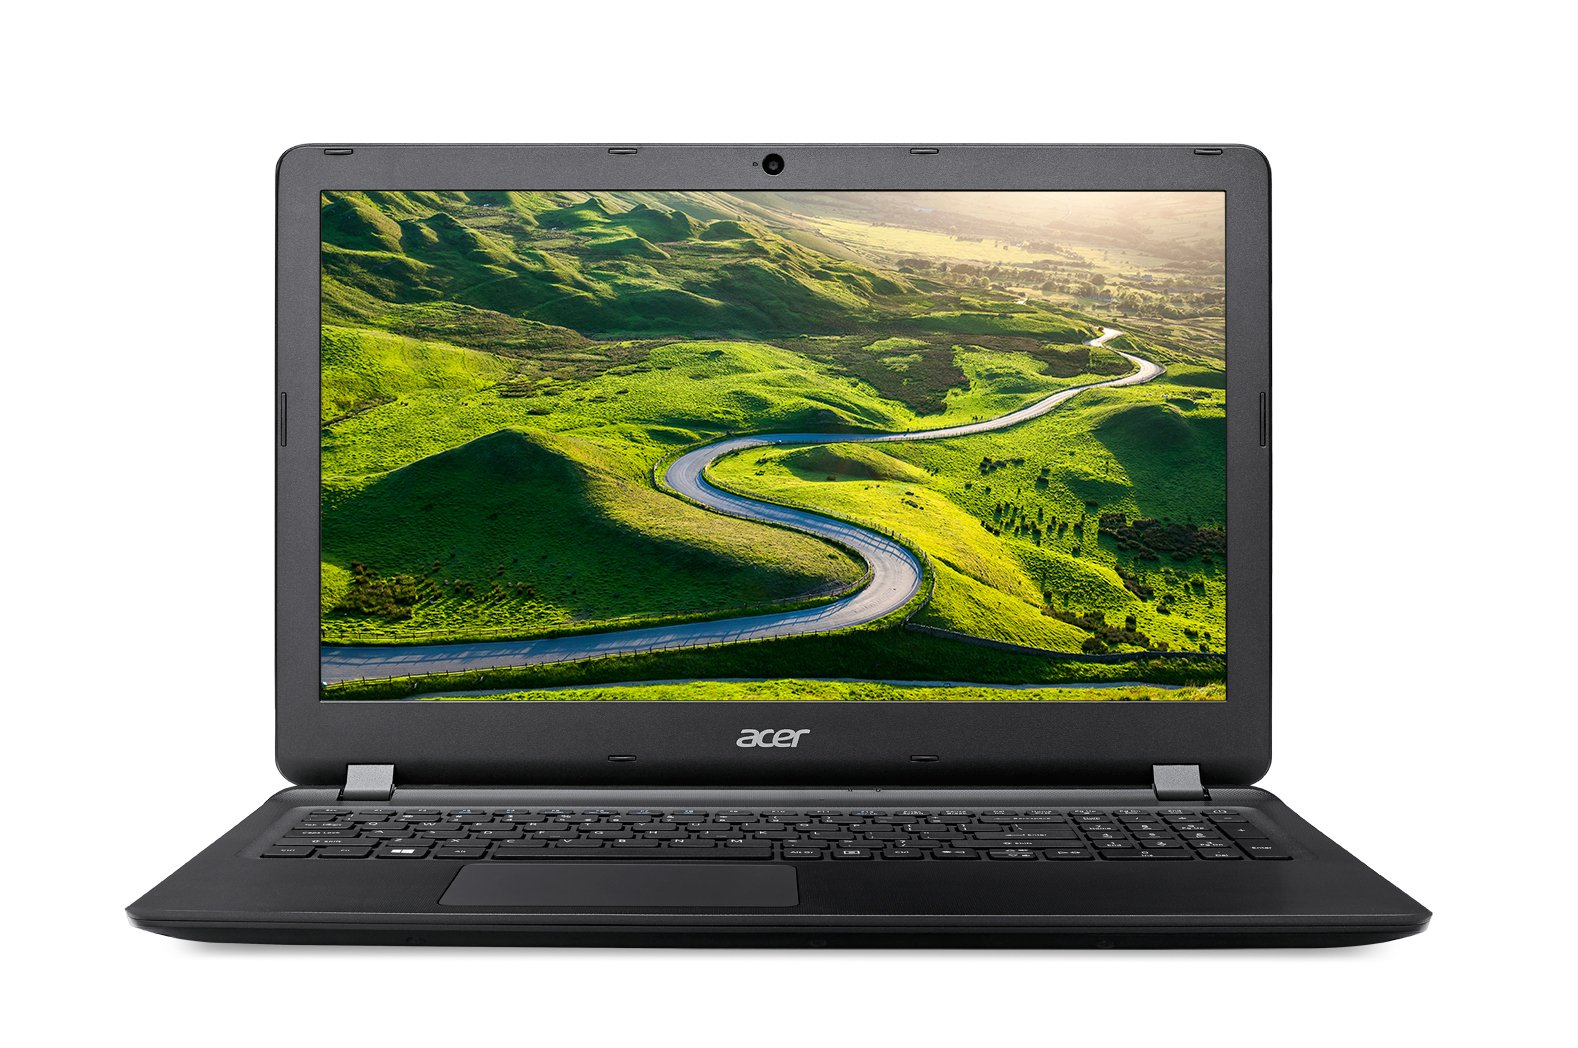 "Acer Aspire ES 15 (ES1-533-P8GM) Pentium N4200/4 GB+N/256 GB SSD+N/DVDRW/HD Graphics /15.6"" FHD LED matný/W10 H/Black"